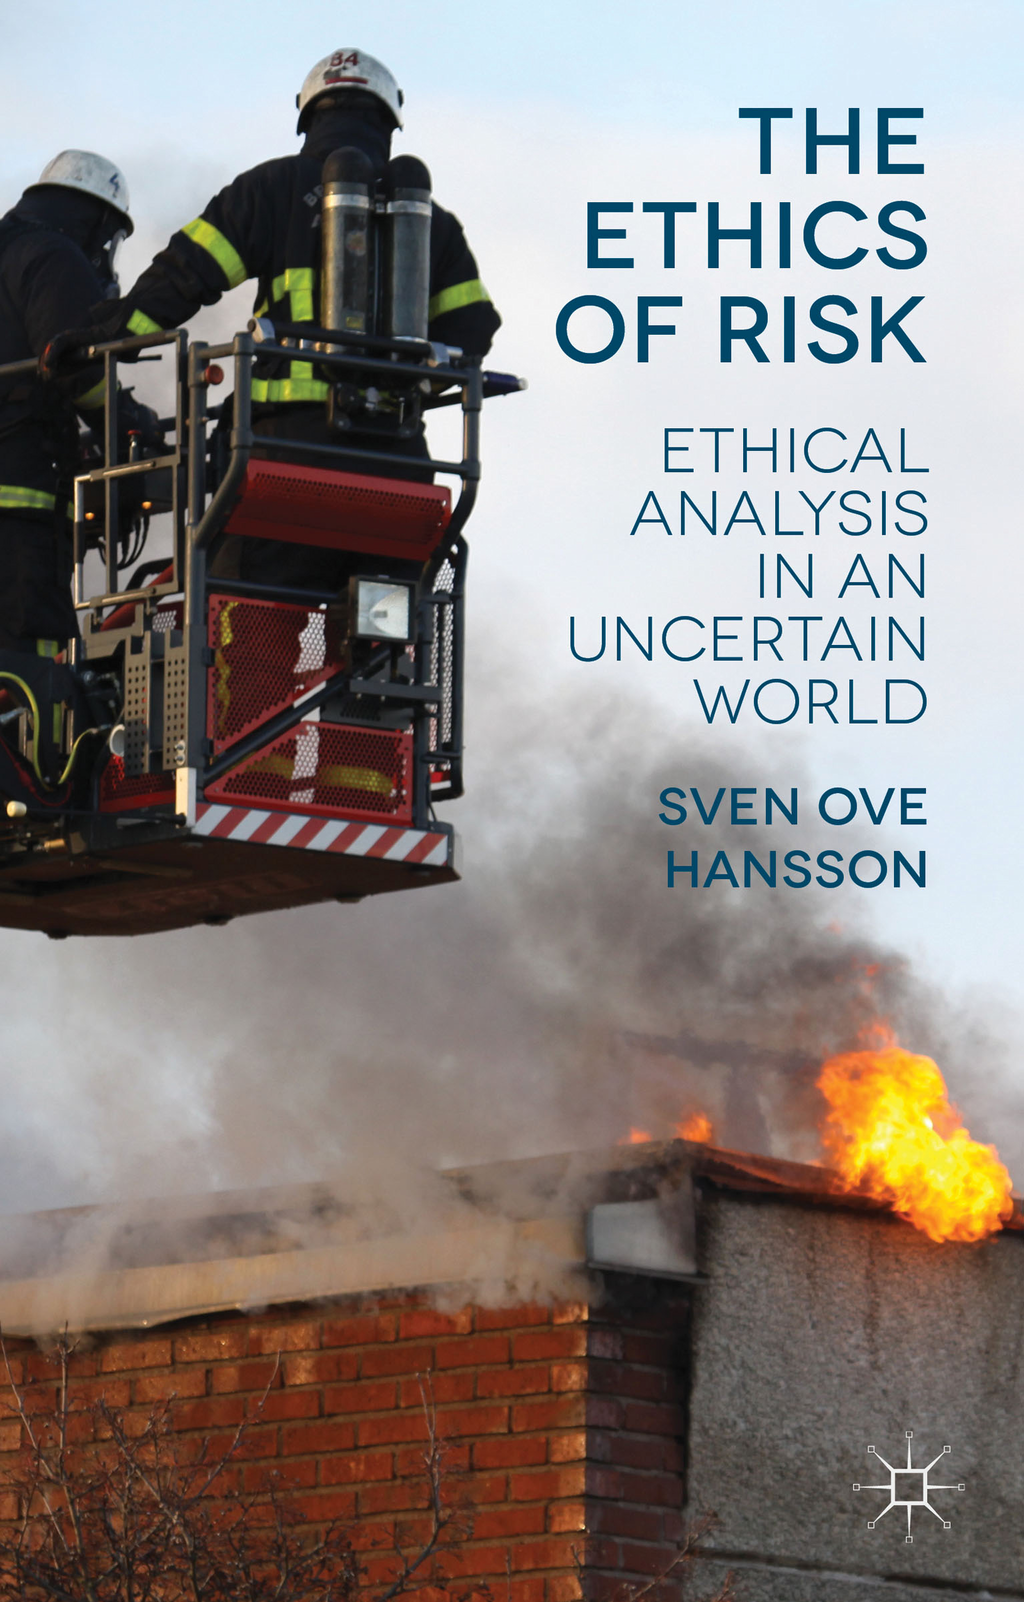 The Ethics of Risk Ethical Analysis in an Uncertain World